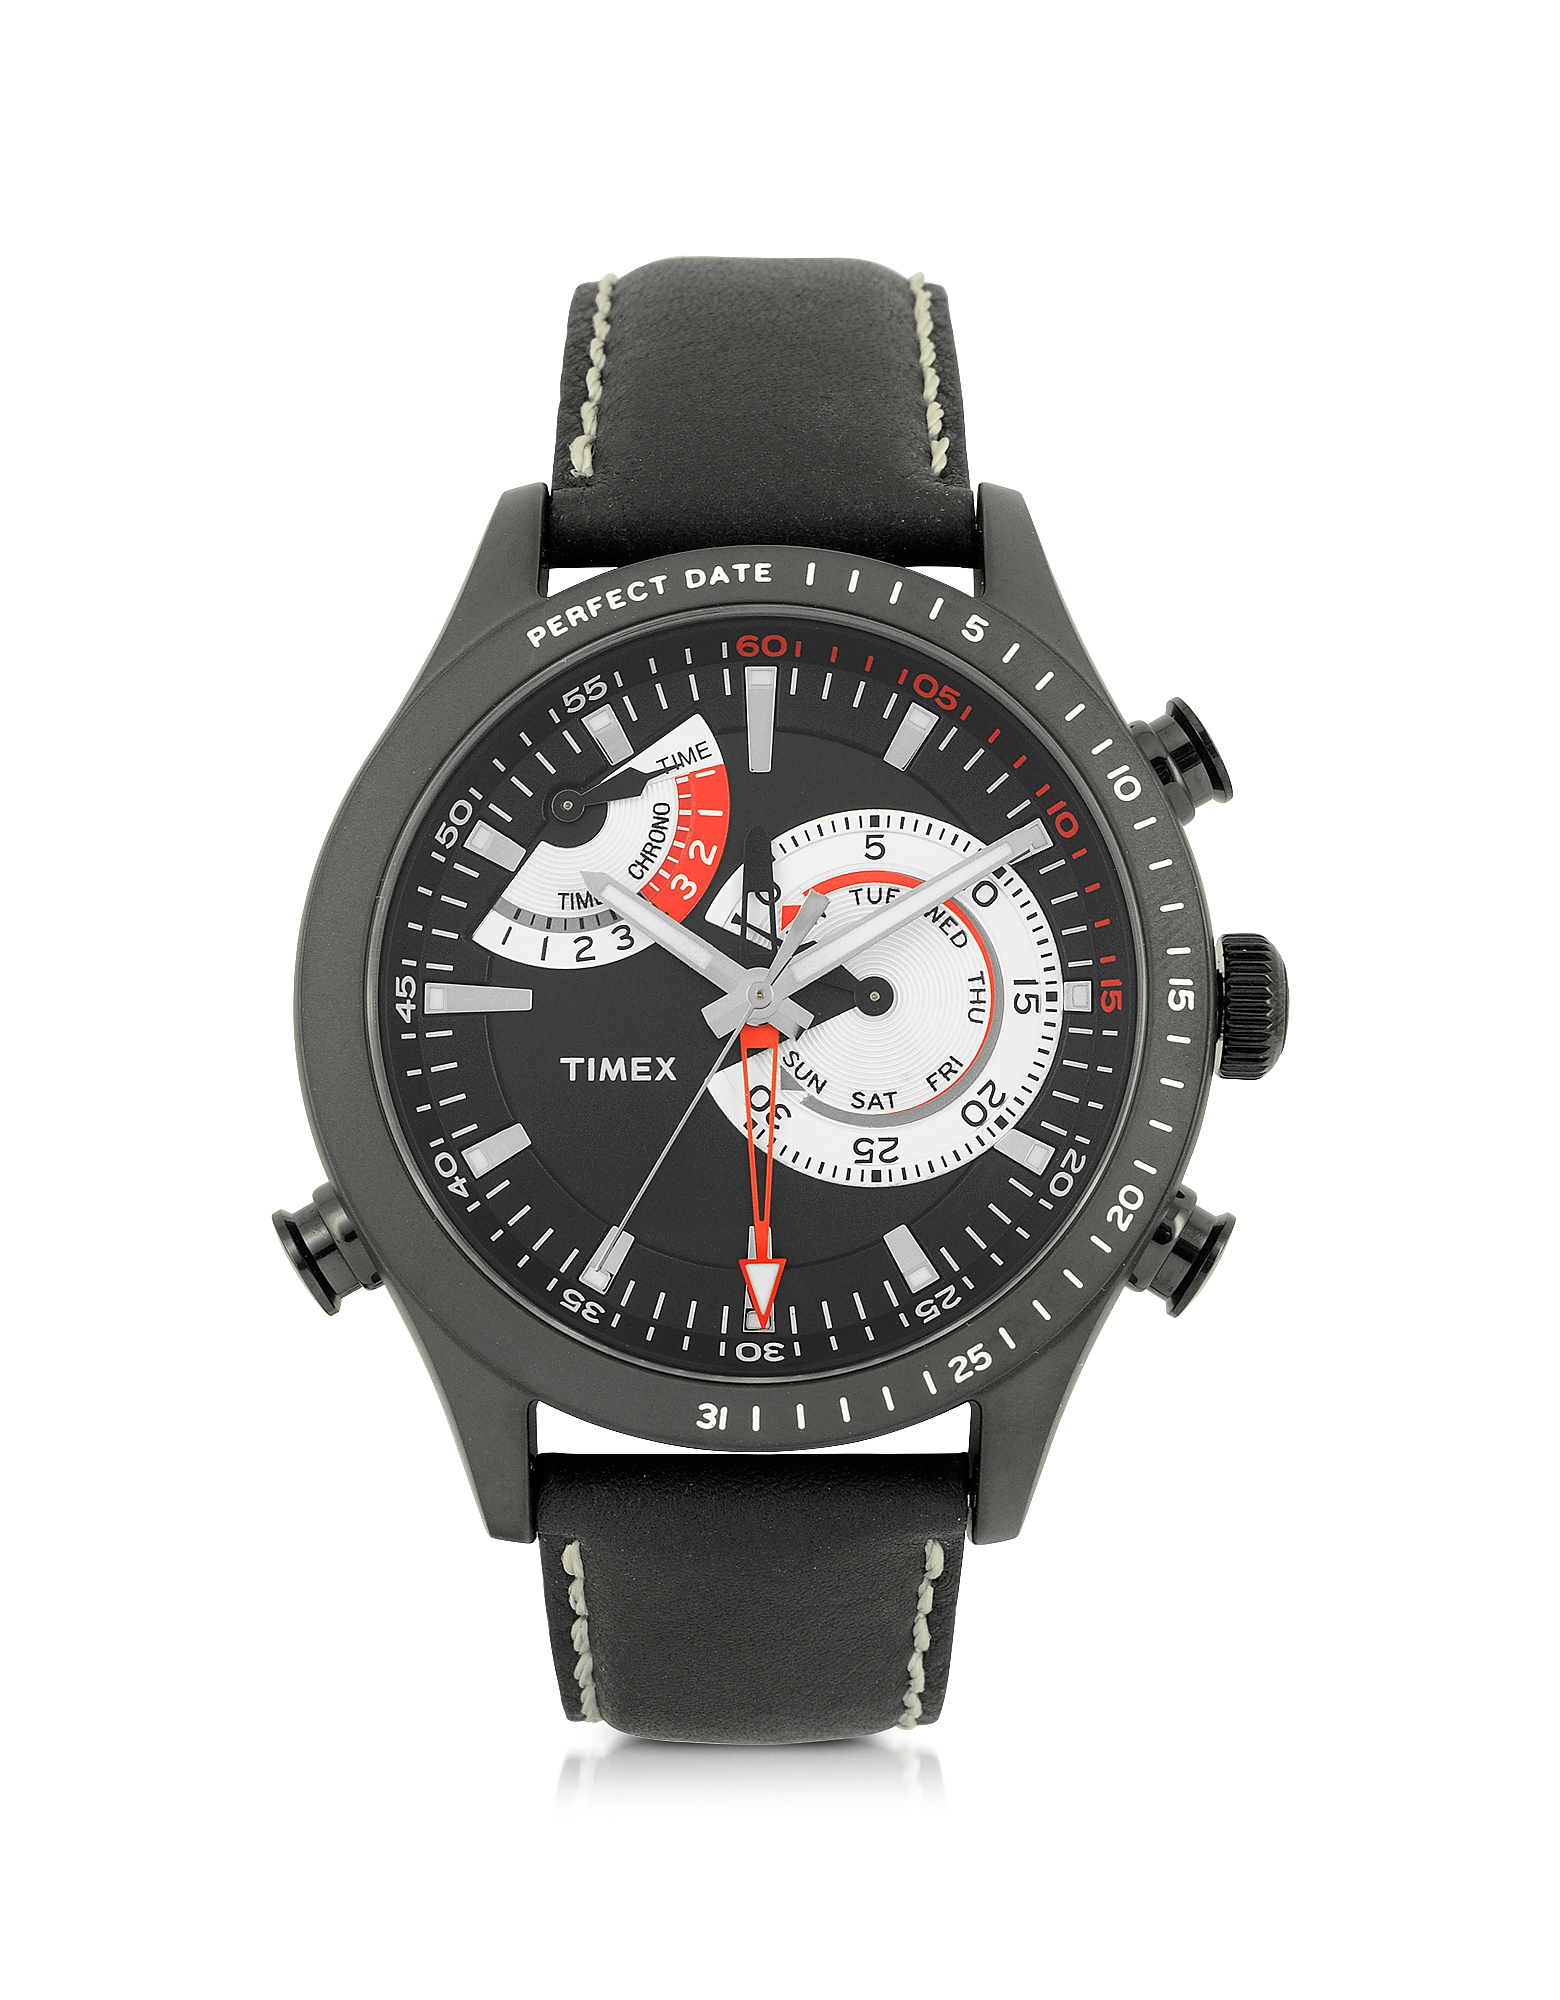 Timex Men's Watches, Chrono Timer Black Stainless Steel Case and Leather Strap Men's Watch